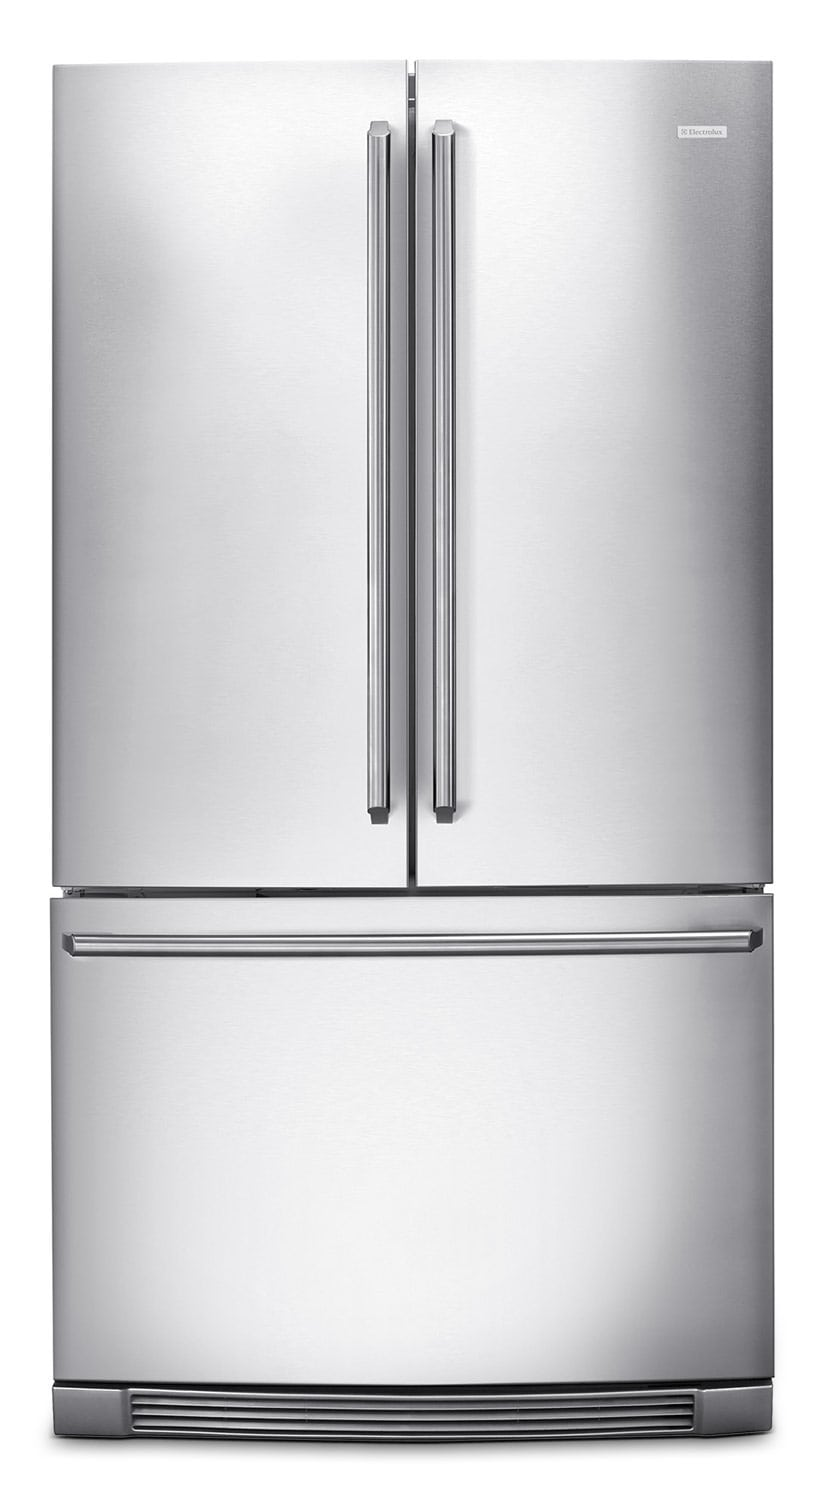 Electrolux Stainless Steel Counter-Depth French Door Refrigerator (22.55 Cu. Ft.) - EI23BC30KS